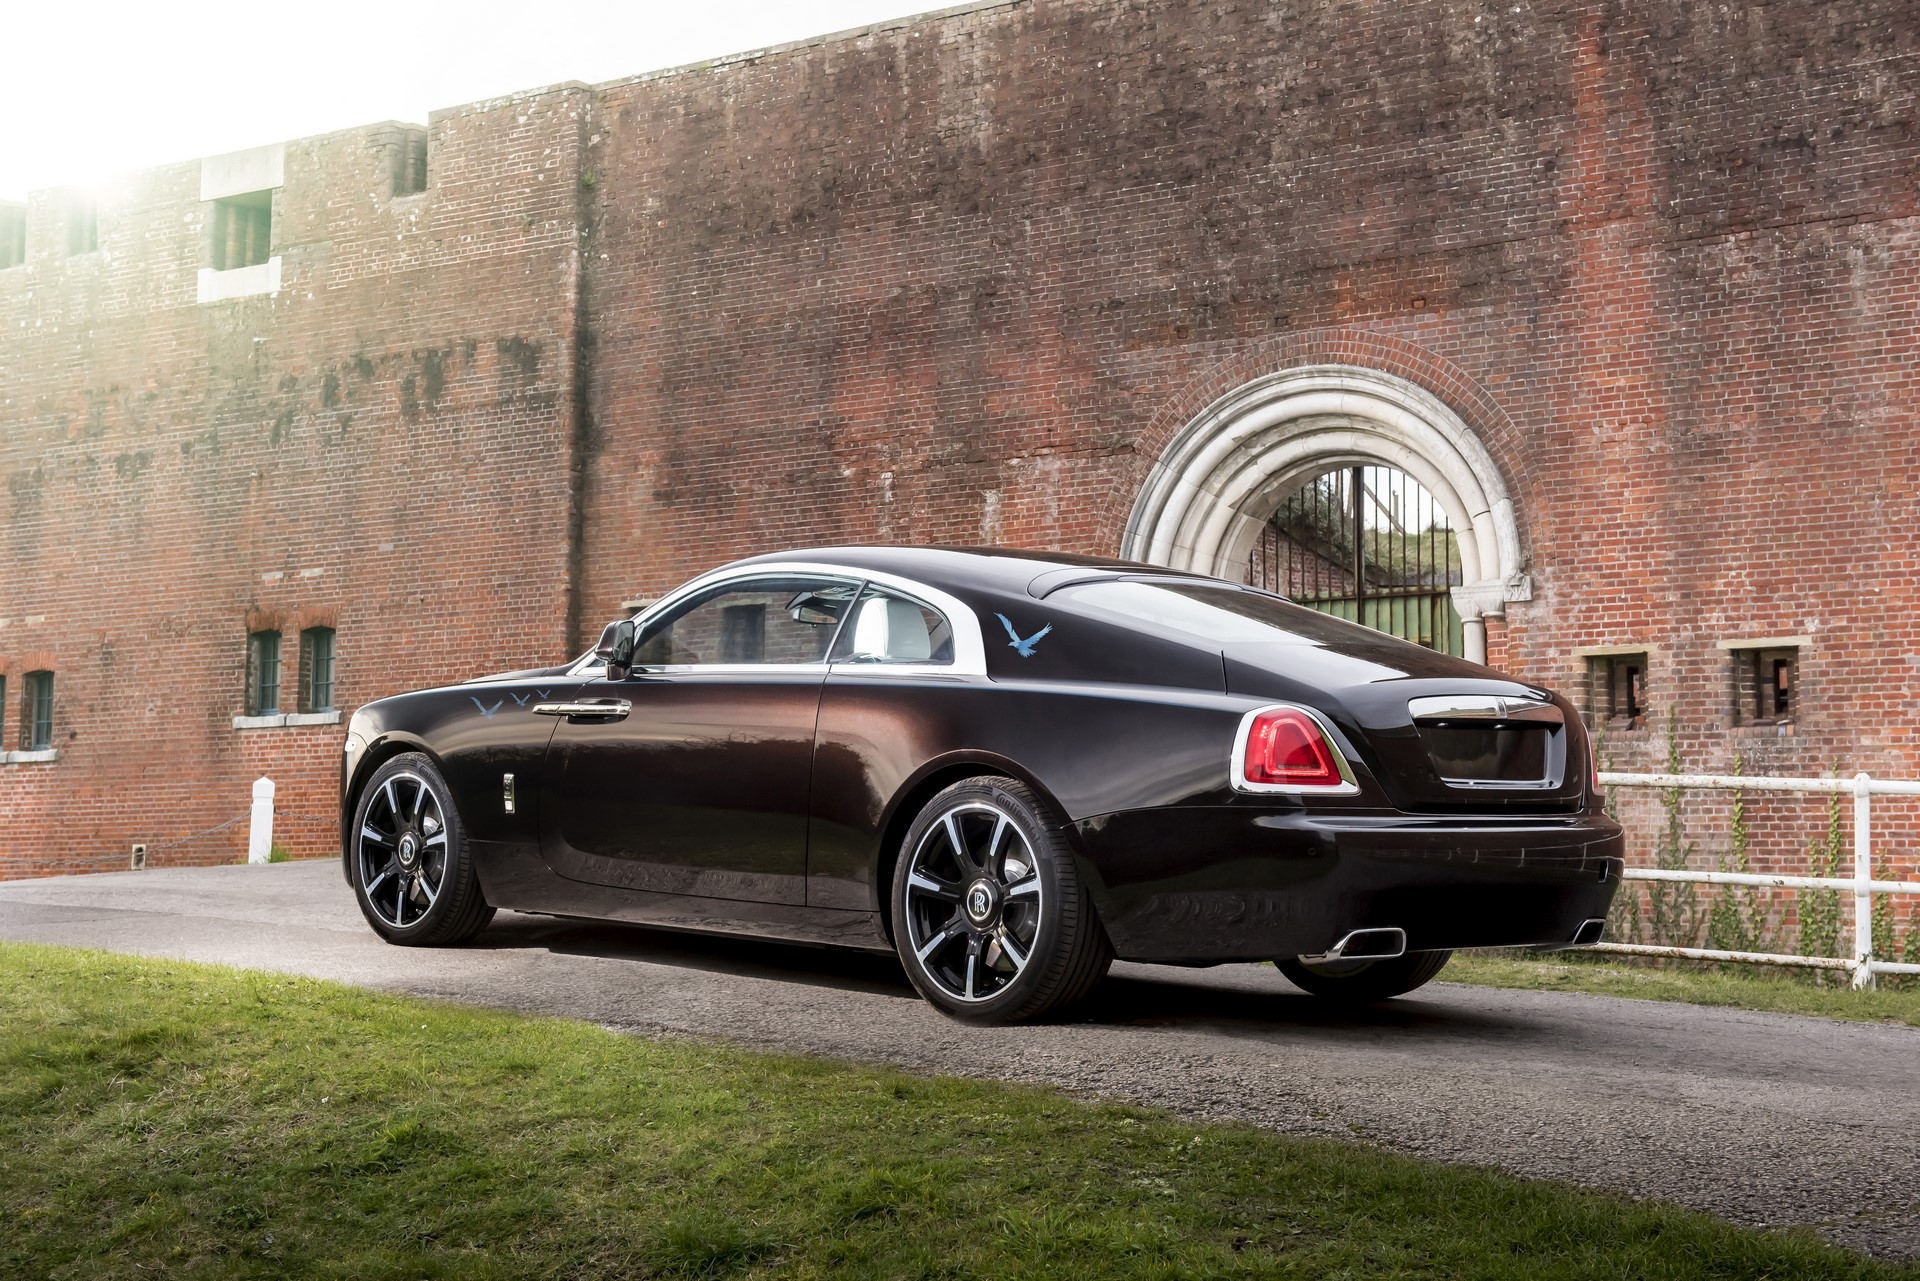 Rolls-Royce Wraith Inspired by Music, March 2017  Photo: James Lipman / jameslipman.com